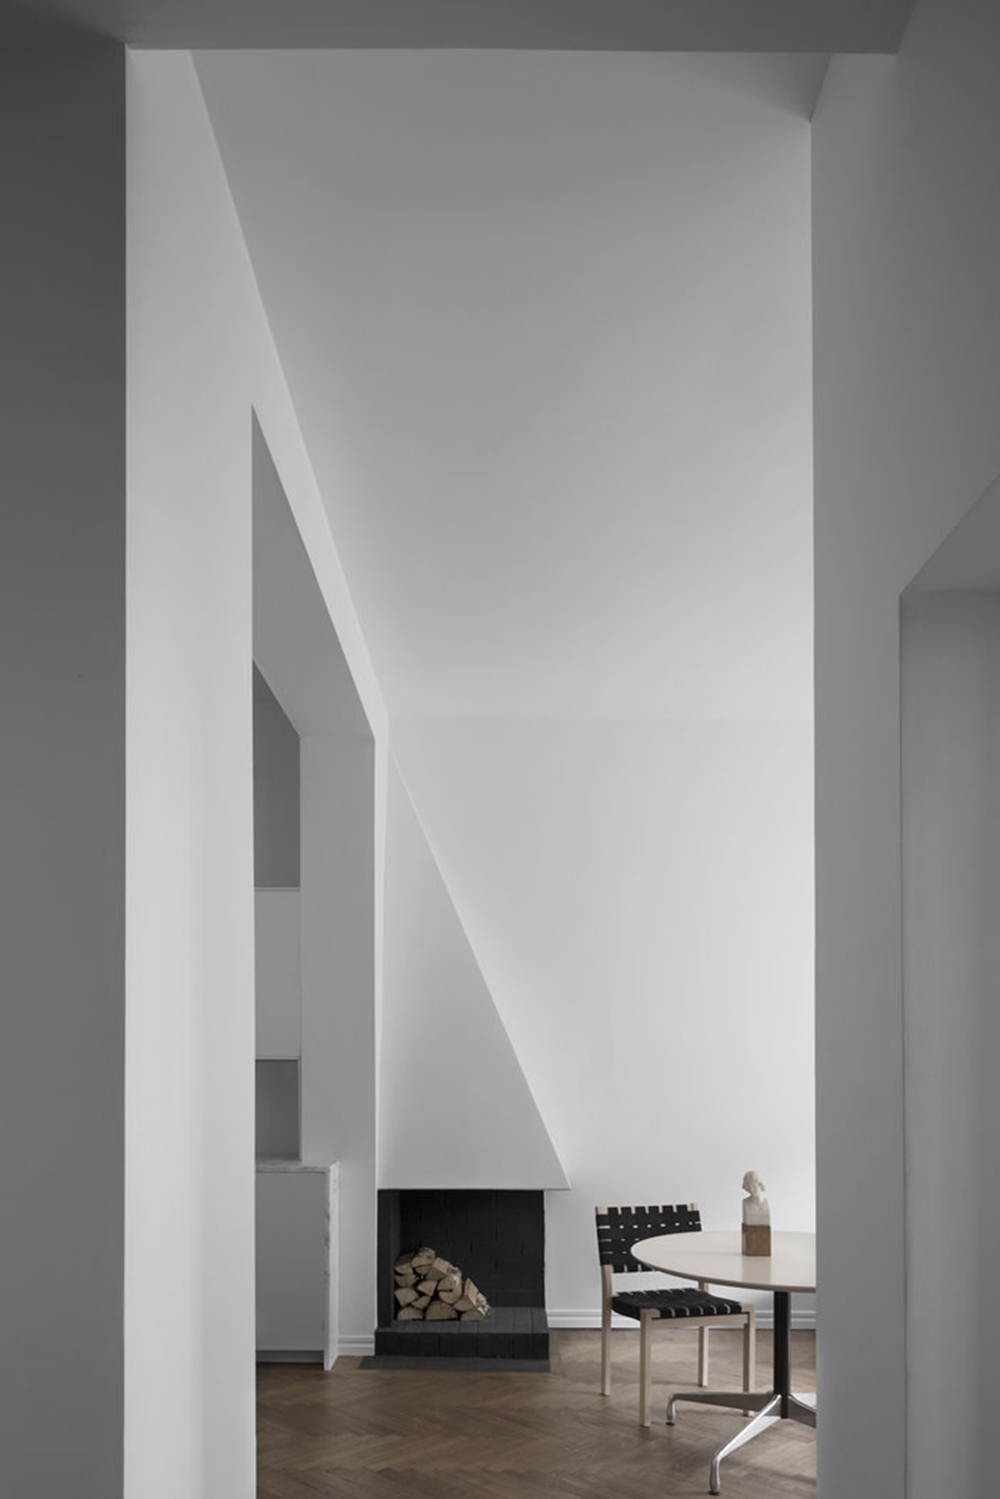 Home, Interiors, Whites, Minimal, Spaces, Lamp, Tonal, Oracle, Fox